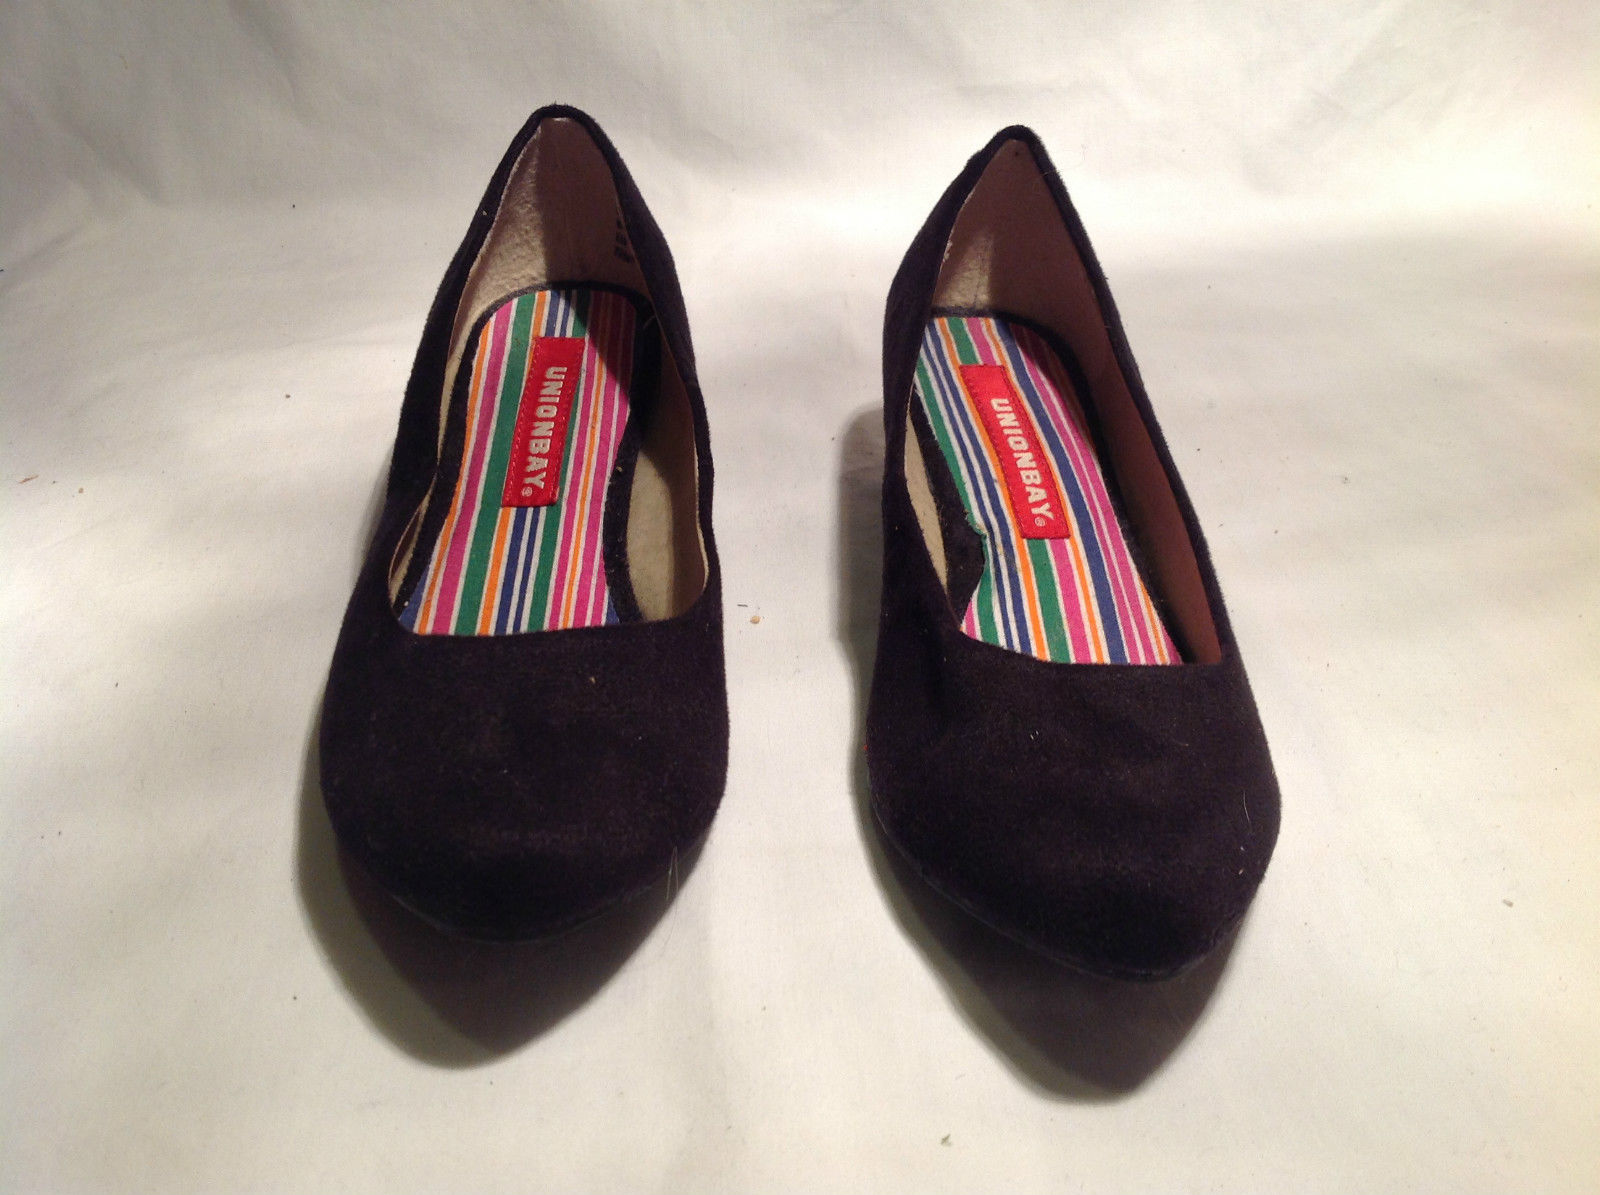 Union Bay Black Small Heeled Slip On Shoe Multicolored Insole Size 6.5M